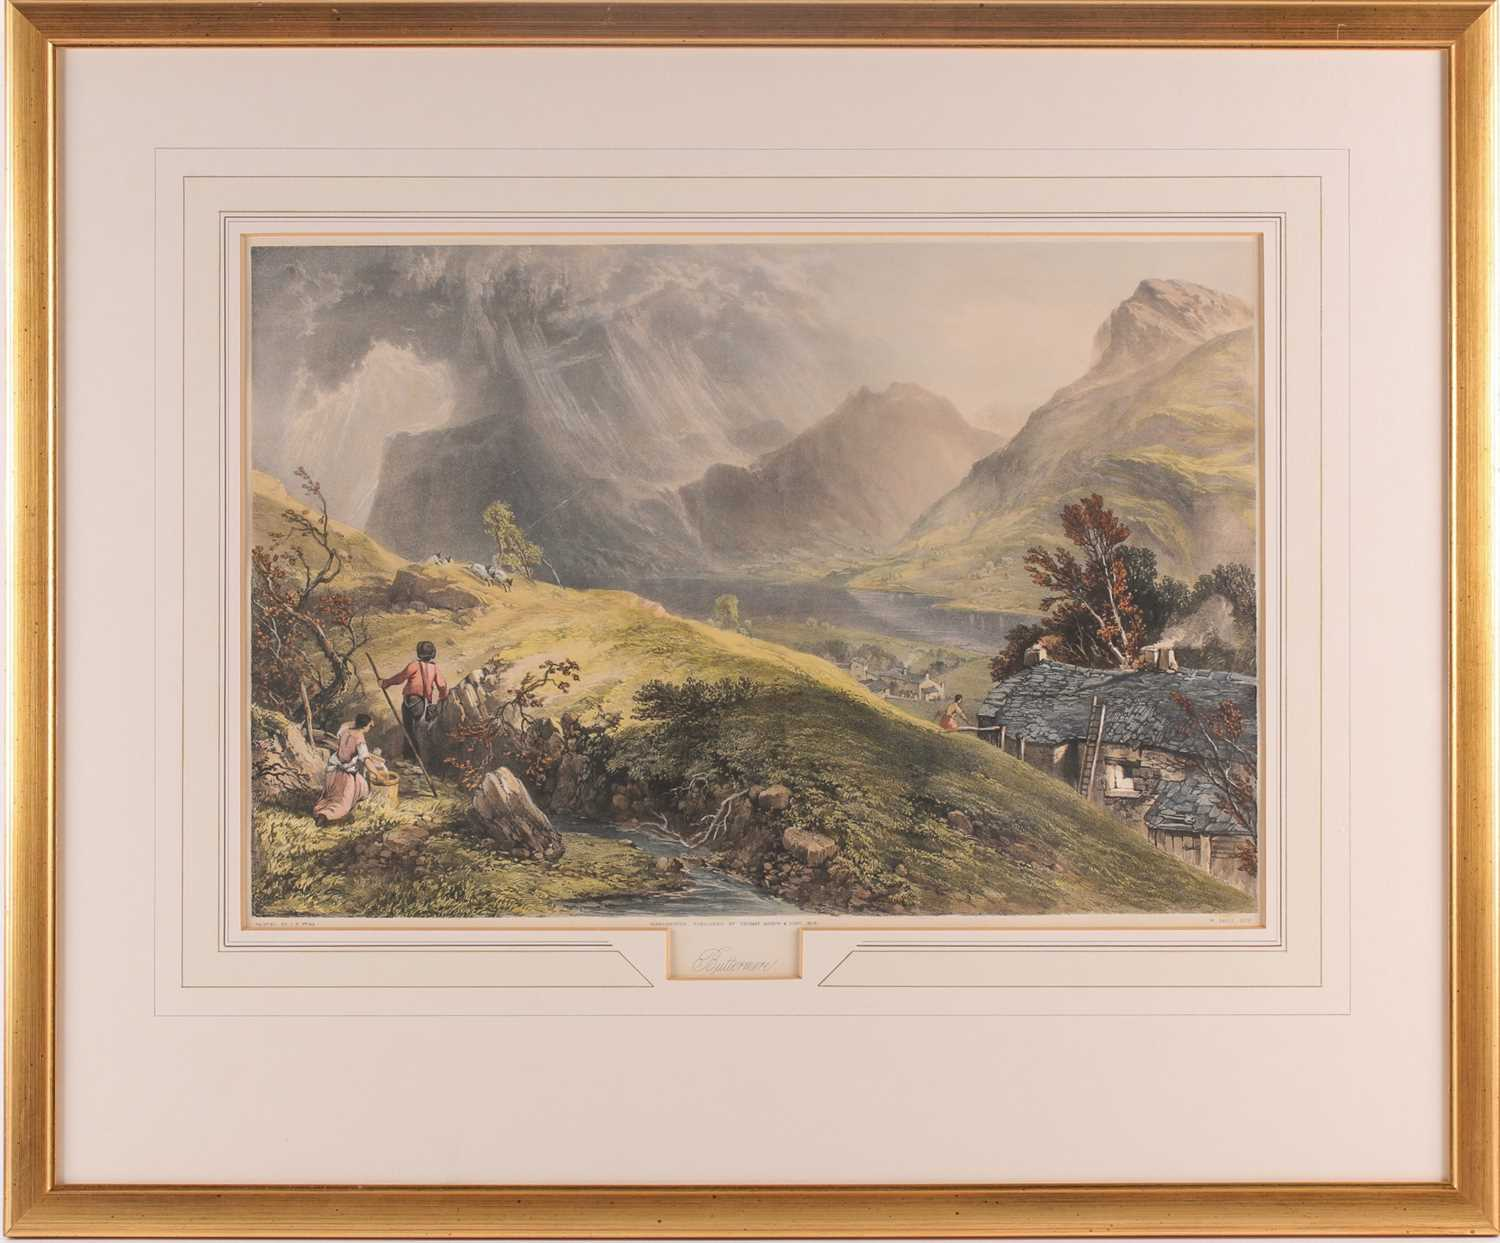 Gauci after J B Pyne, Skiddaw, Buttermere, The Vales of Emmerdale and Buttermere, The Rydal Water, - Image 12 of 13